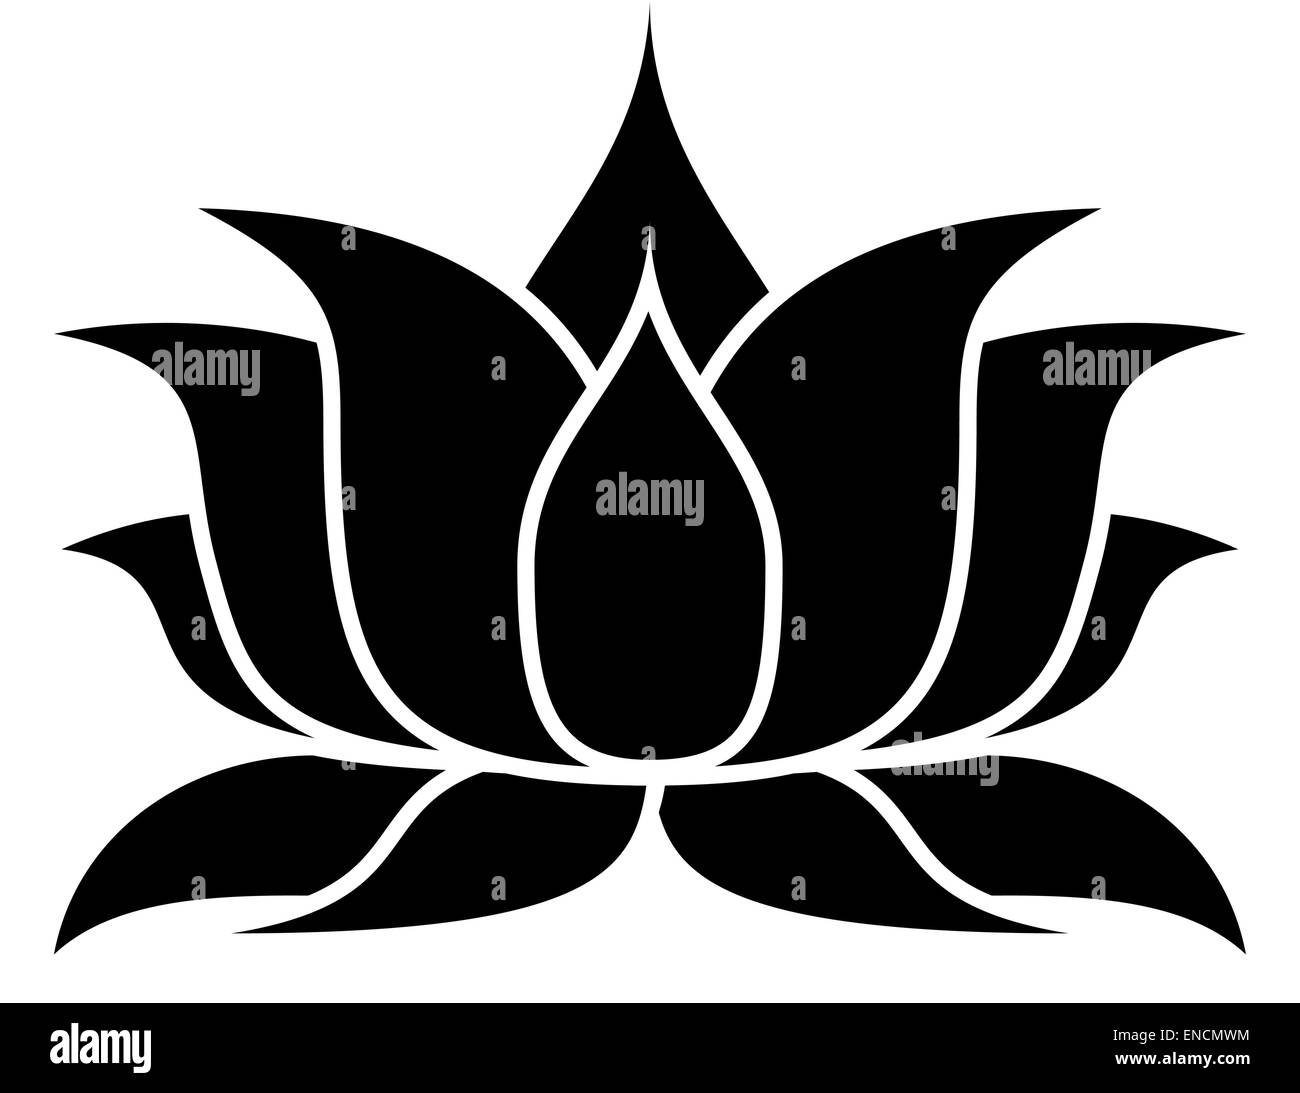 Lotus Flower Art Black And White Stock Photos Images Alamy